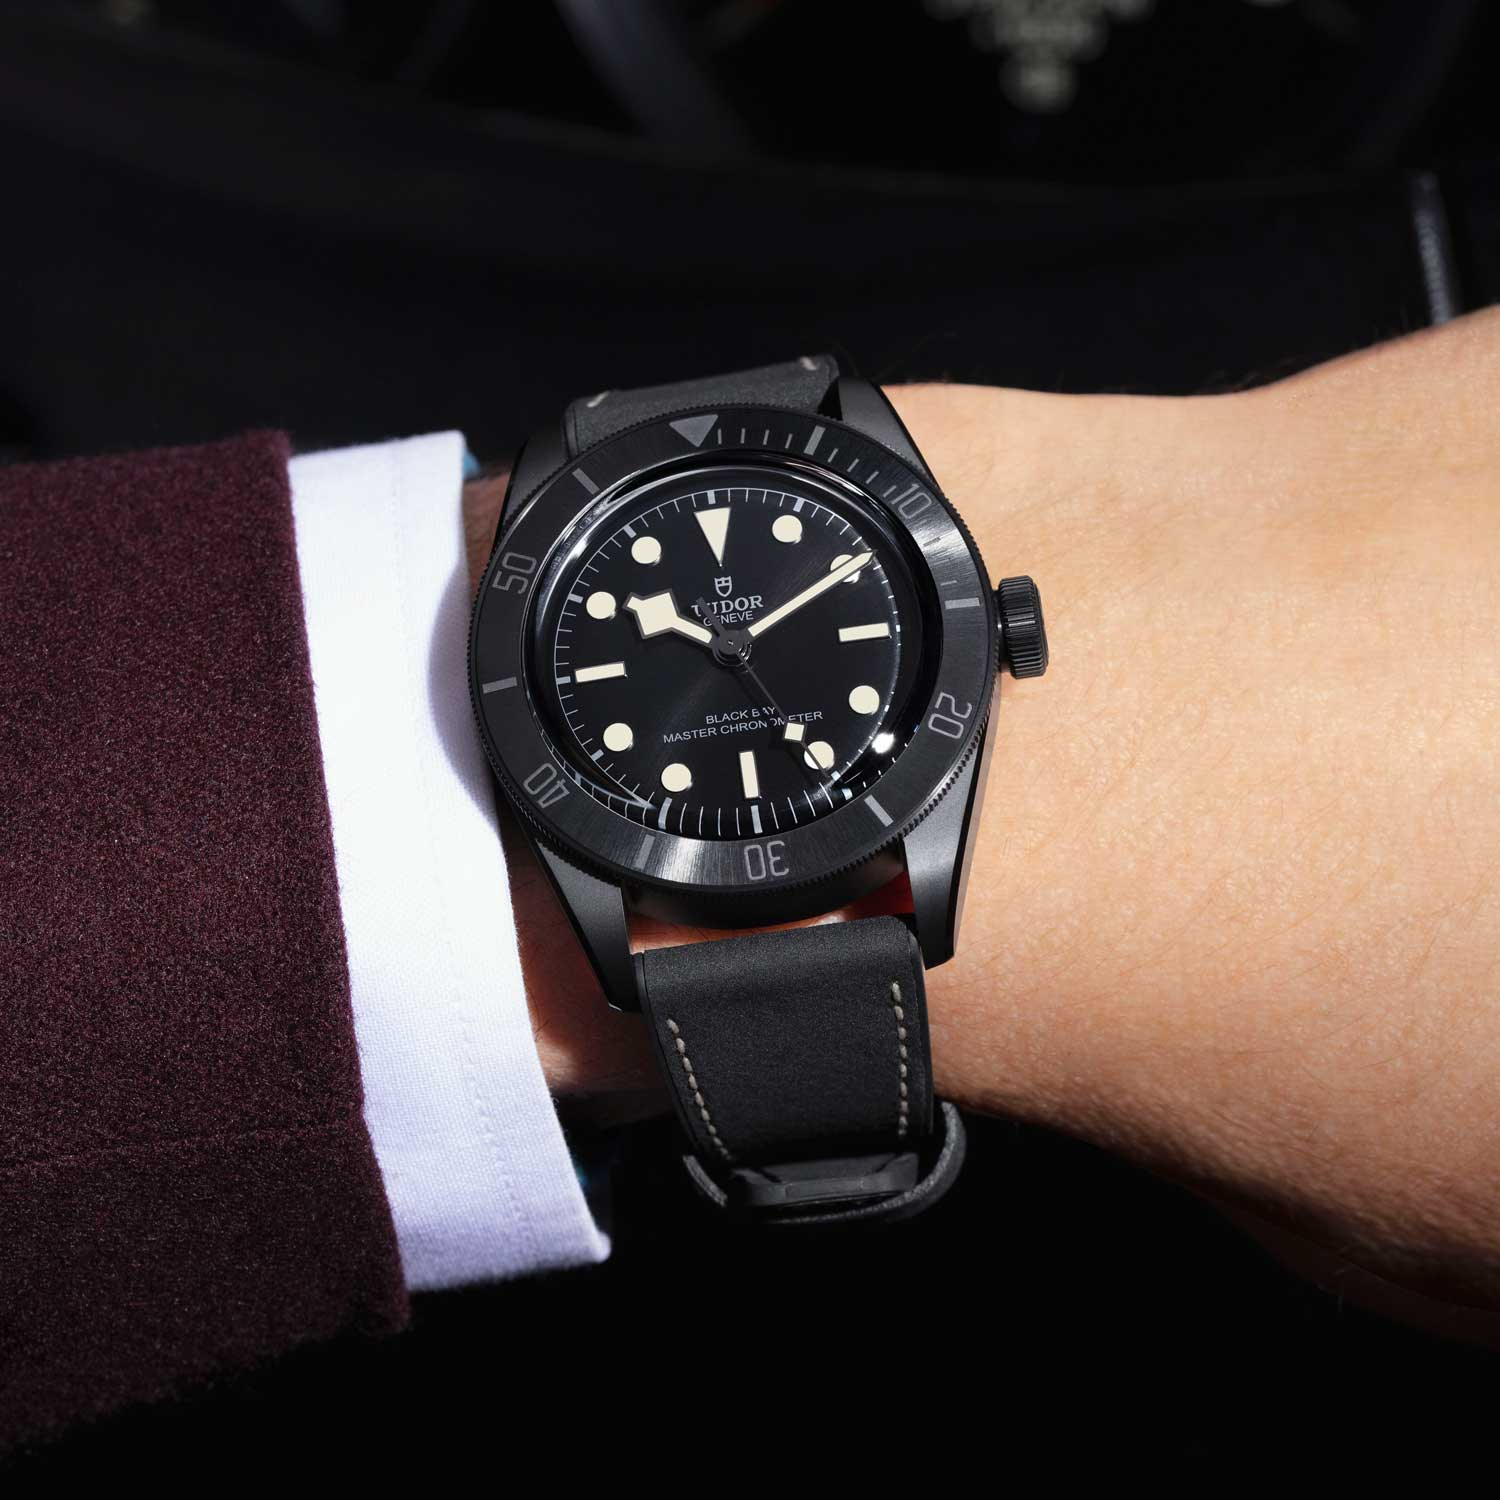 The Black Bay Ceramic is water resistant up to 200m